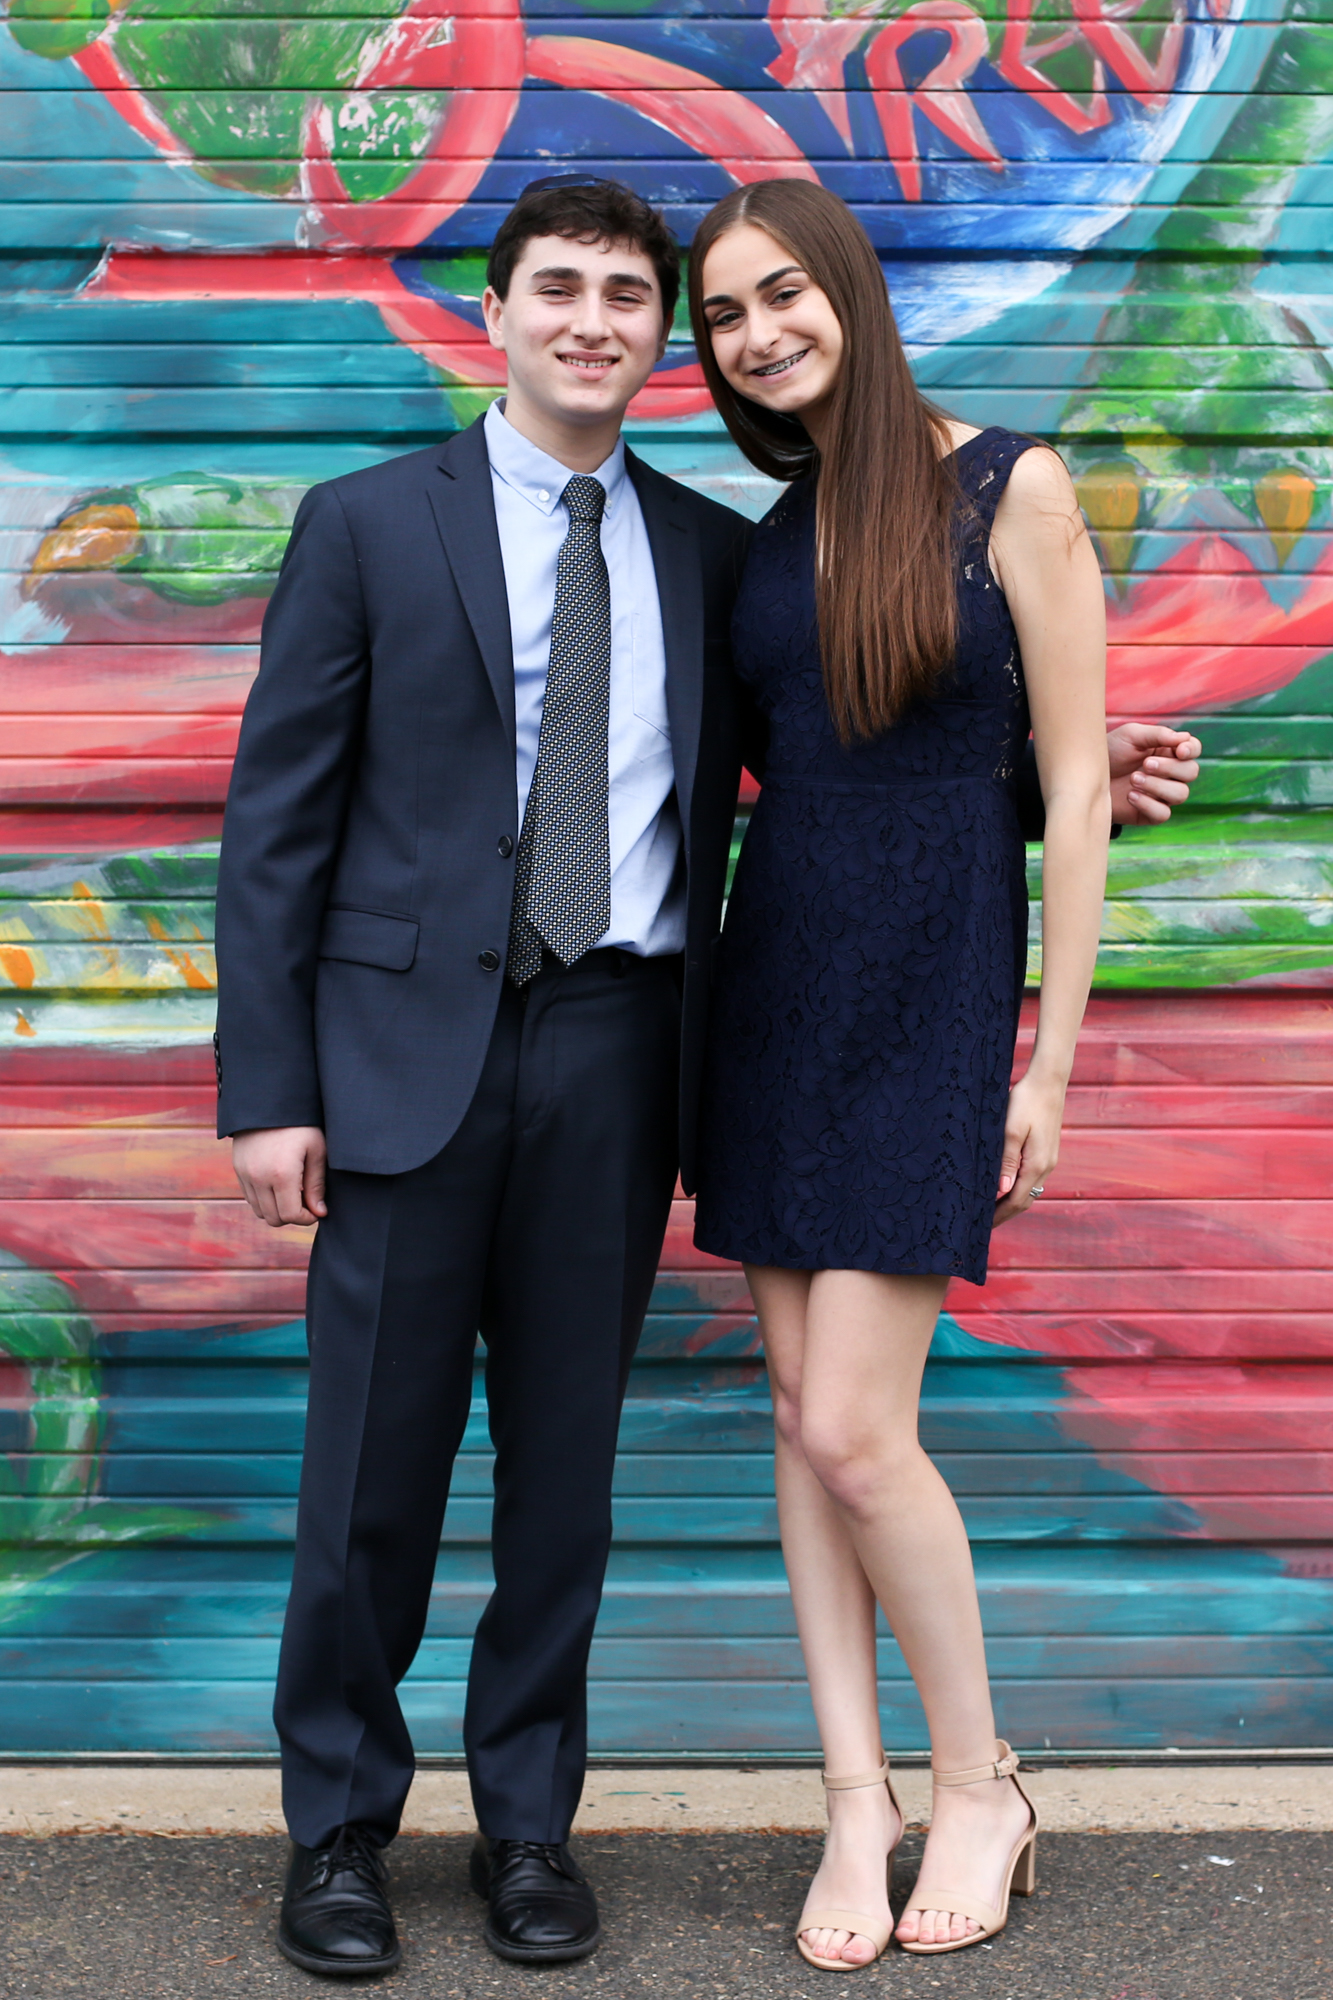 Max_Bar_Mitzvah_Preview (7 of 68).jpg